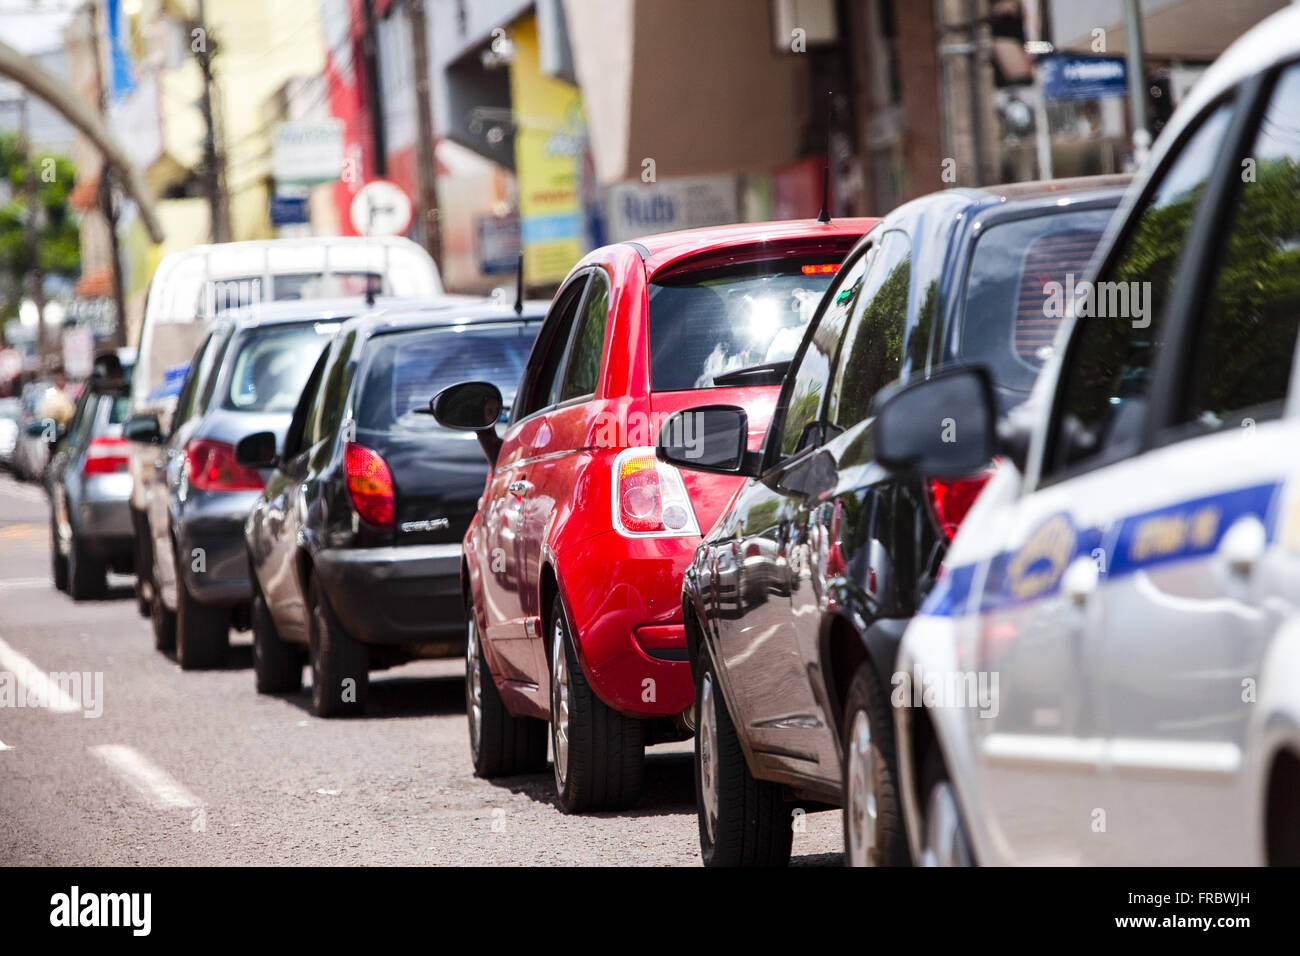 Row of cars in traffic on Commercial Street in the city center - Stock Photo